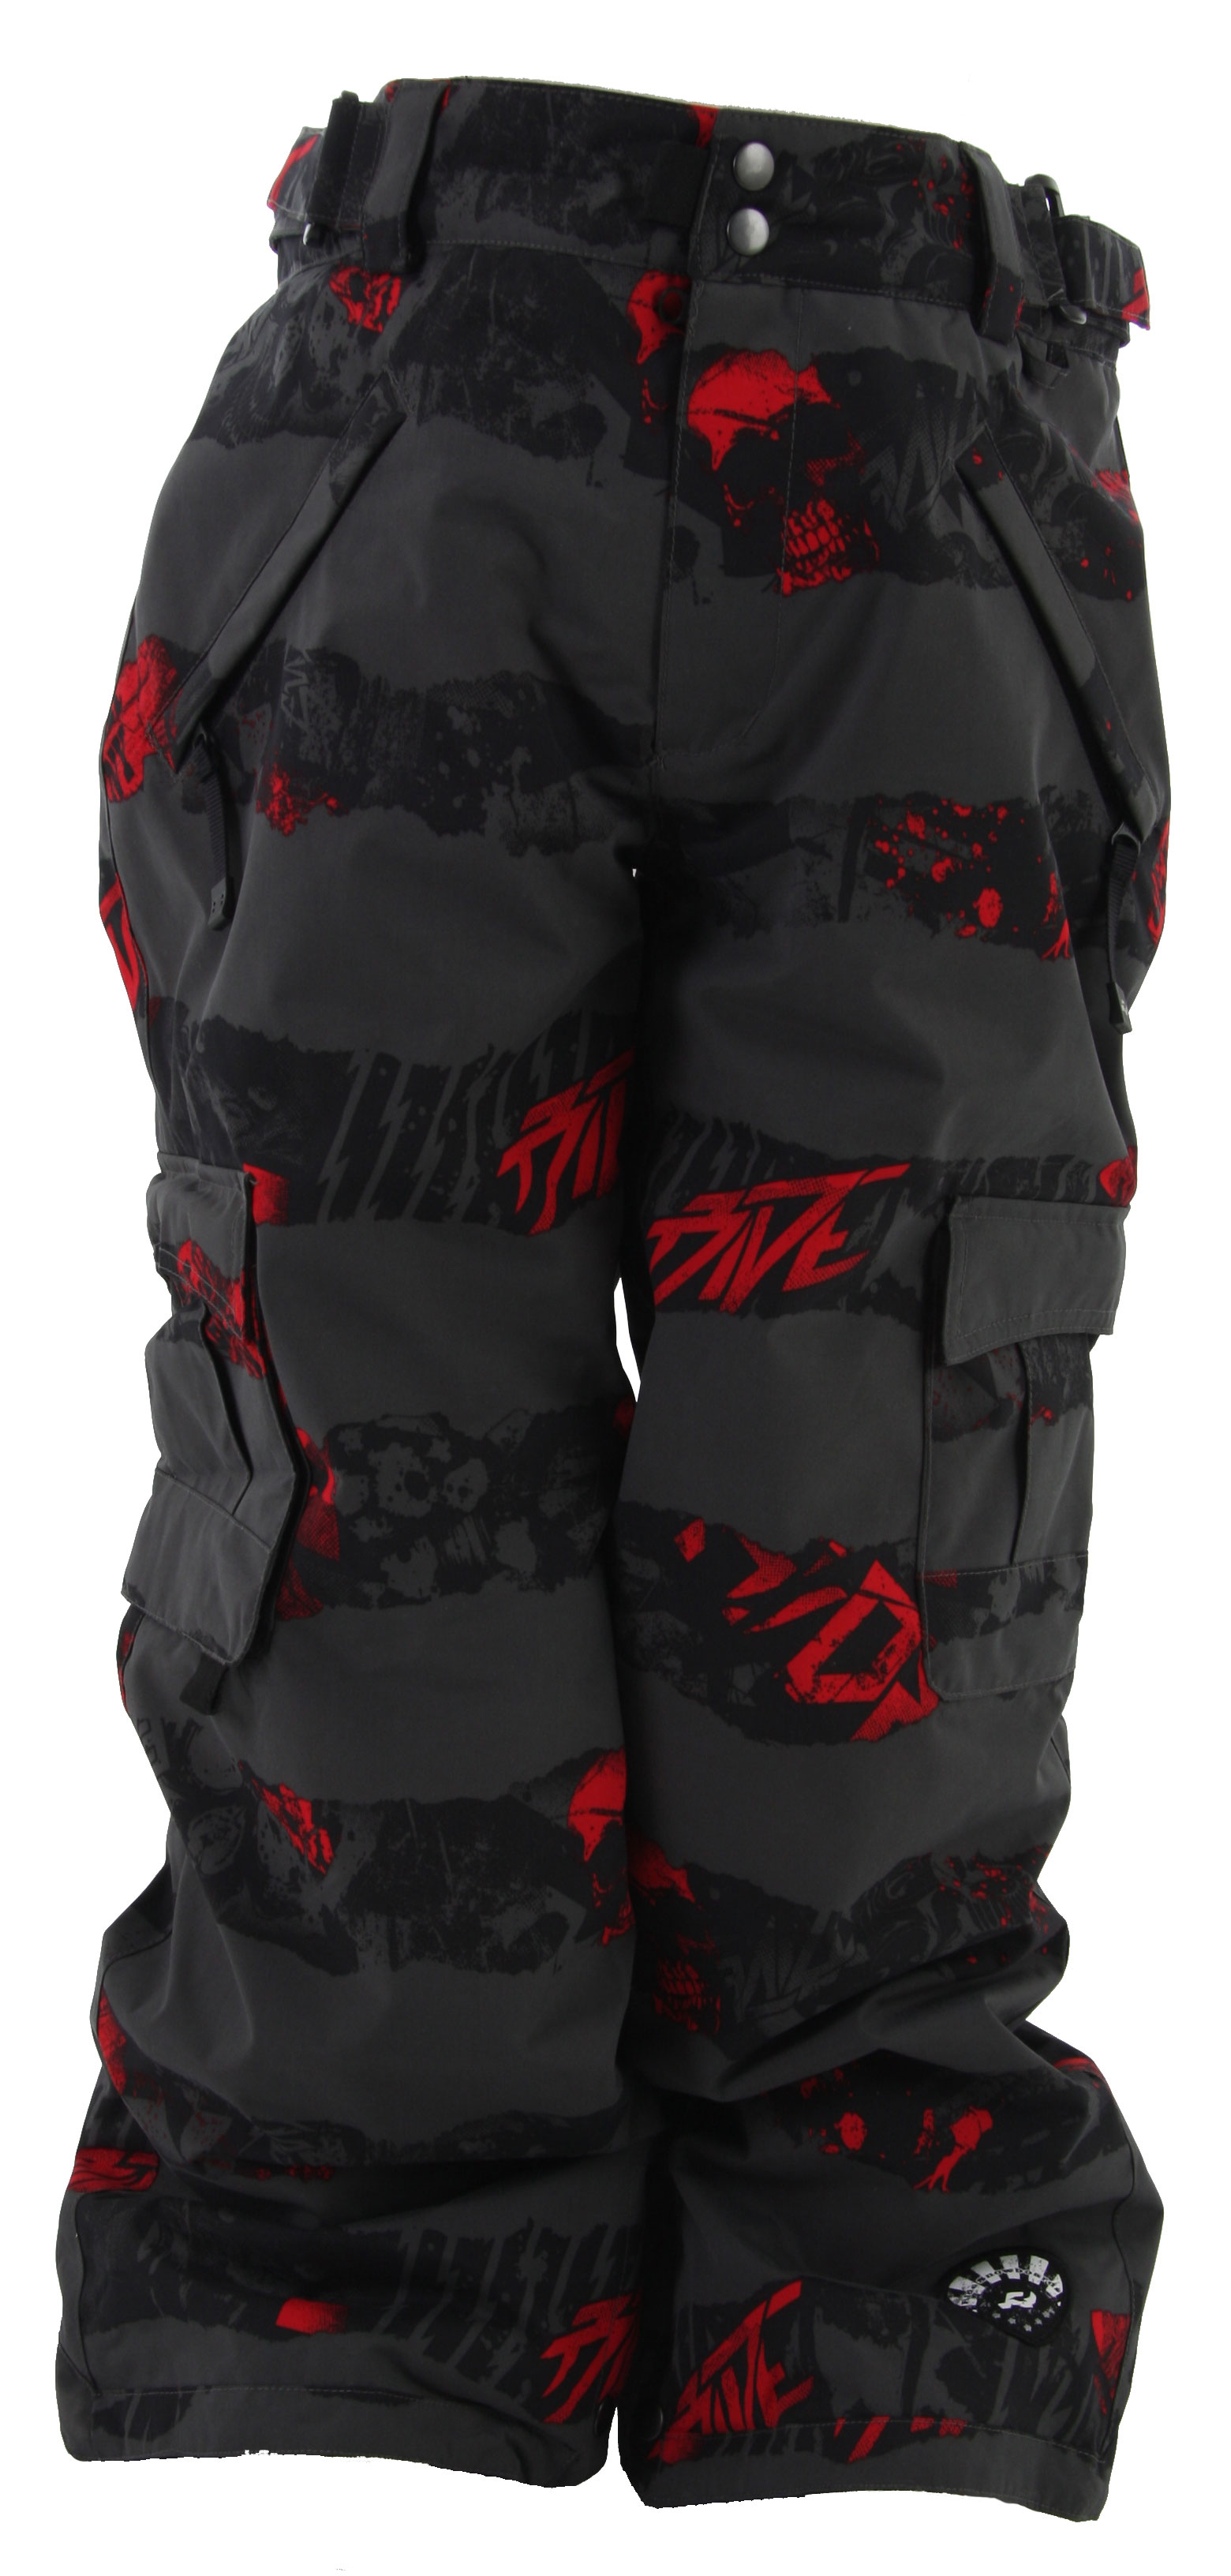 Snowboard Nothing ruins a snowboarding trip like wet pants. That is why the Ride Charger Insulated Snowboarding Pants are an absolute must on your next snowboarding trip. These pants not only keep you warm, but they also keep you dry. The insulation of these pants is designed to keep that body heat in, and the cold air out. The crafty exterior of these pants allow for you to fall in the snow without having to worry about getting soaked. Do not let cold pants ruin a perfectly good trip.Key Features of the Ride Charger Snowboard Pants:  3,000mm Waterproof  2,000g Breathability  Critically Taped Seams  Adjustable, Double-Snap Elastic Waist Closure  Velvety Tricot Inner Waist, Butt and Fly  Shred-Free Slightly Higher Pant Leg Back  Boot Gaiters  Side Cargo Pass Pocket  Lift Ticket Self-Fabric Loop  Front Micro-Fleece Lined Toaster Pockets  Key Clip In Front Pocket  80G Poly Insulation With Tricot Lining  Side Cargo Pockets and Back Pockets  Durable Dobby Weave Fabric - $44.95